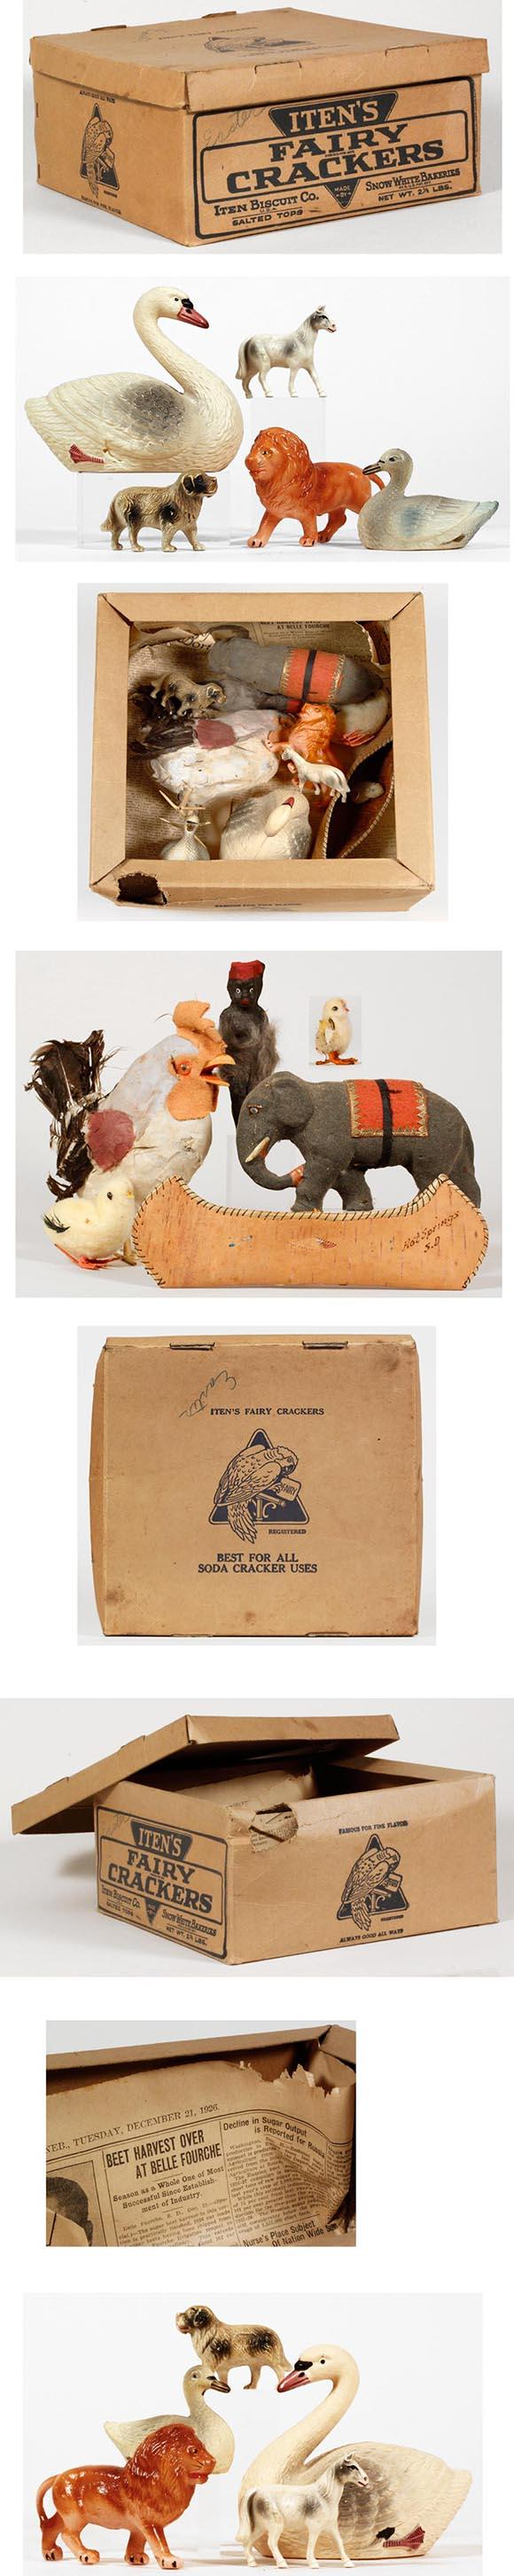 1920's Celluloid & Feathered Critters in Biscuit Box